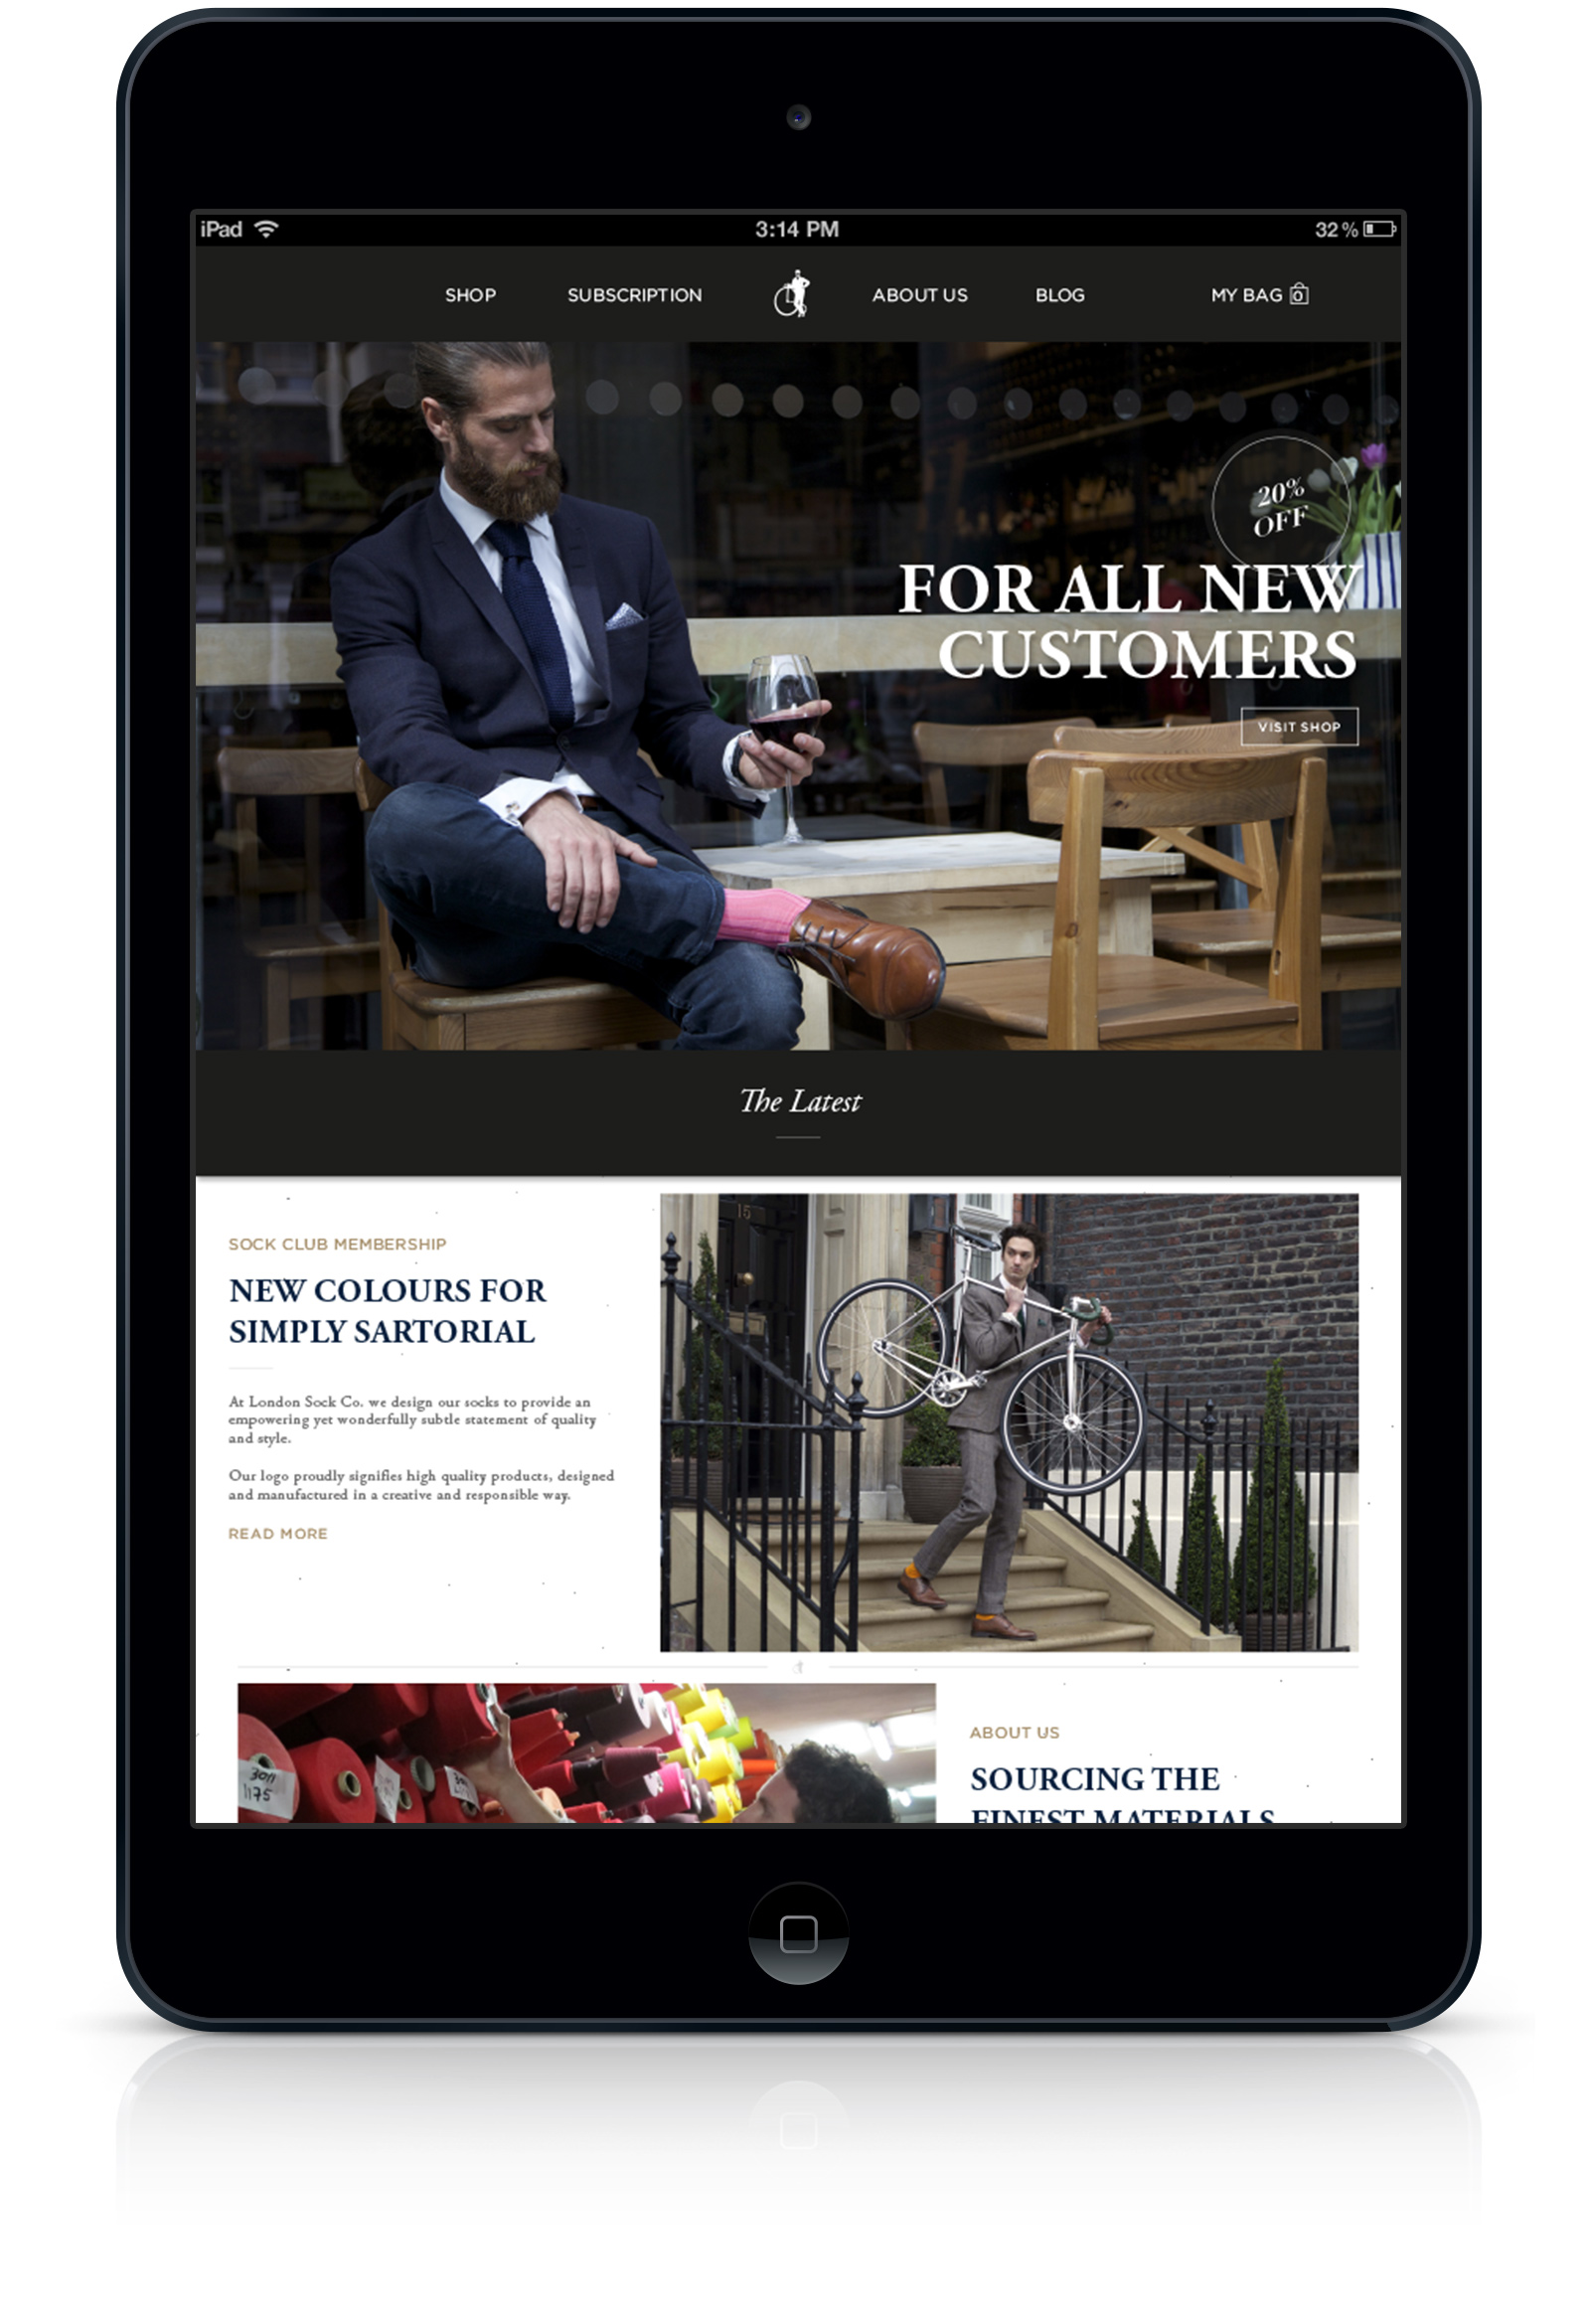 London Sock Company website home page design and development on iPad